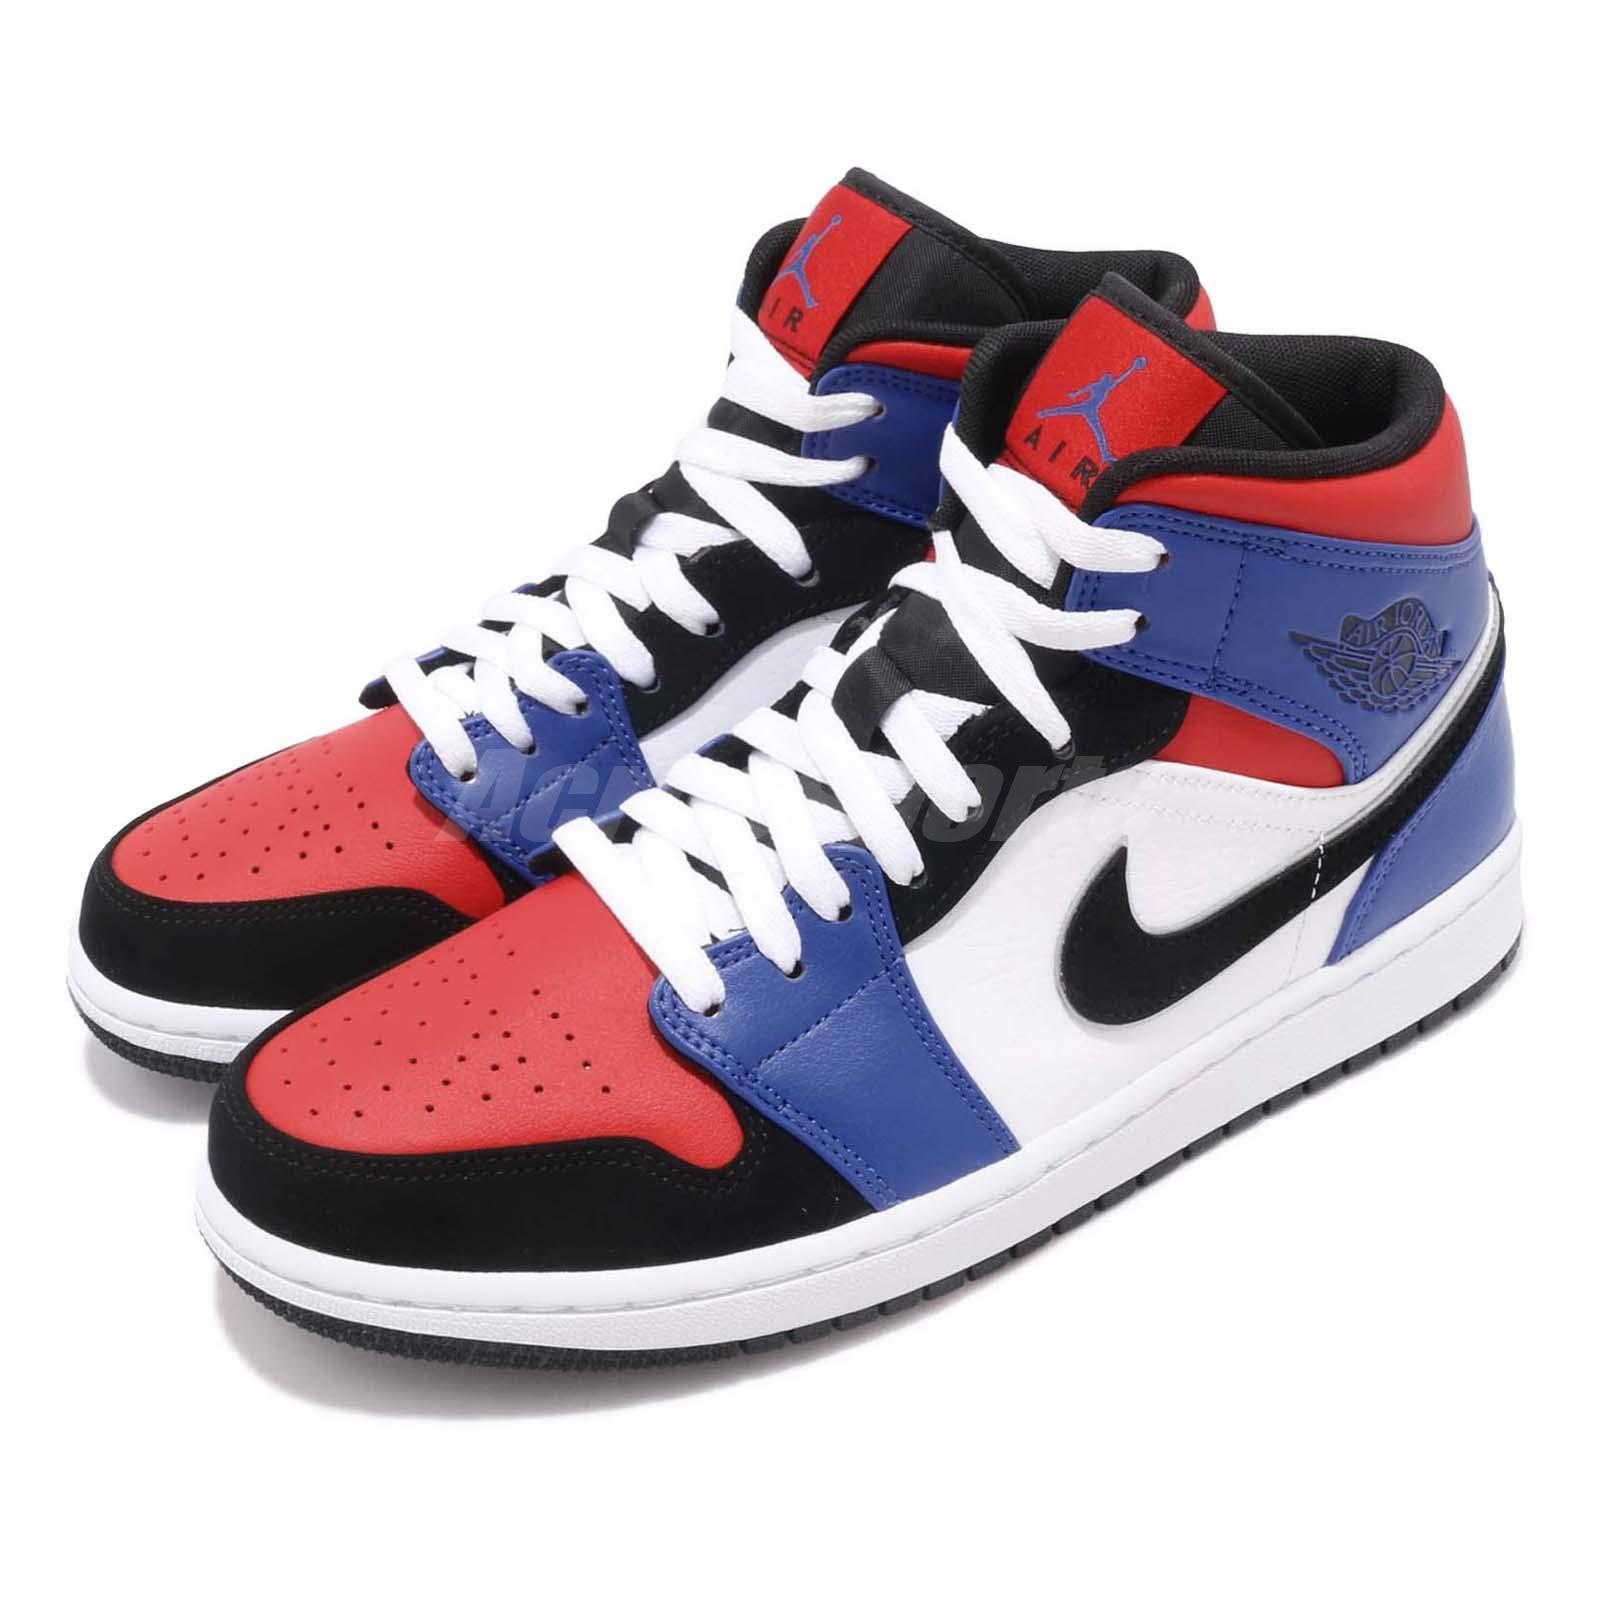 pretty nice b2190 d36cb Details about Nike Air Jordan 1 Mid Top 3 White Black Blue Red AJ1 I  Sneakers Shoes 554724-124